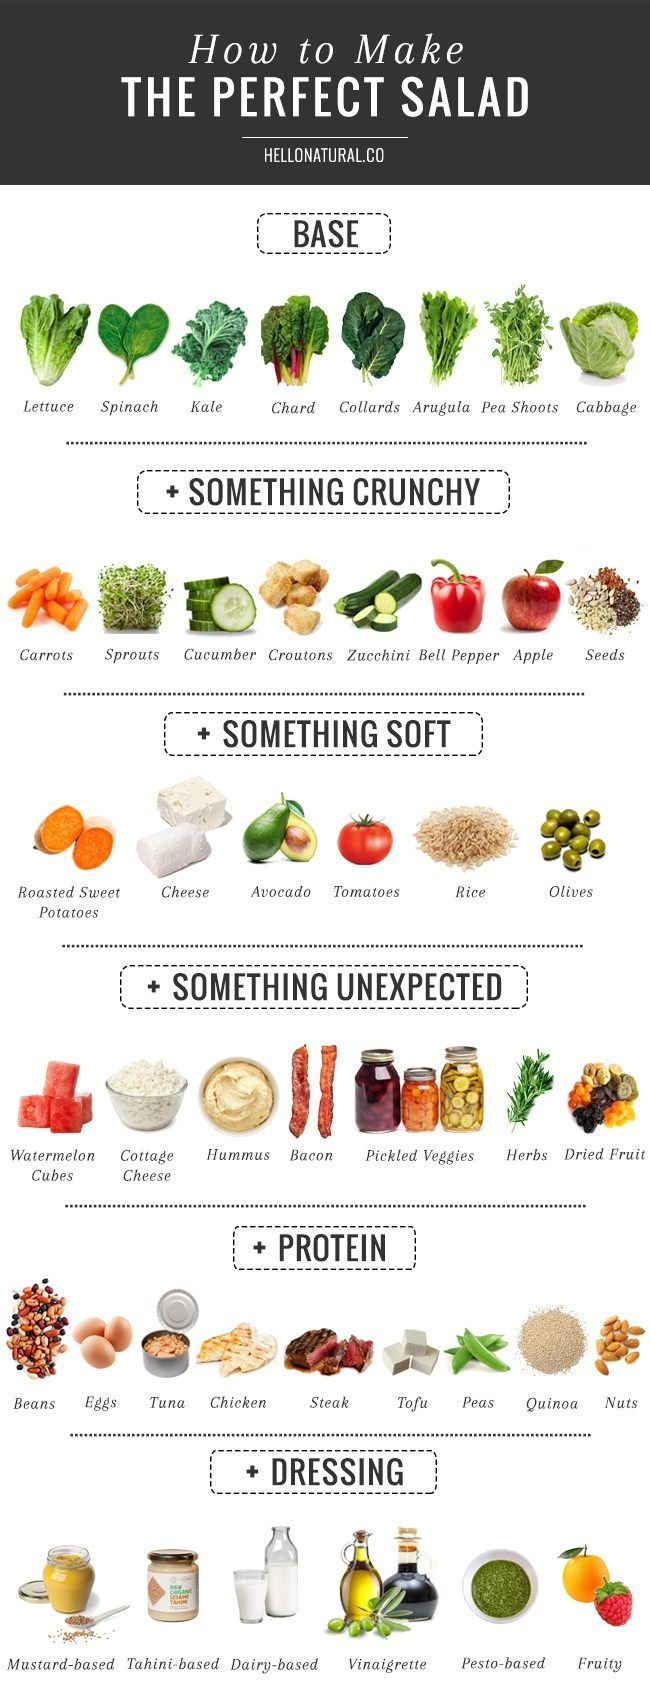 Simple  Fast  Always the right salad idea  a small overview of how it works   Simple  Fast  Always The Right Salad Idea  A Little Overview How It Works  How To Make Th